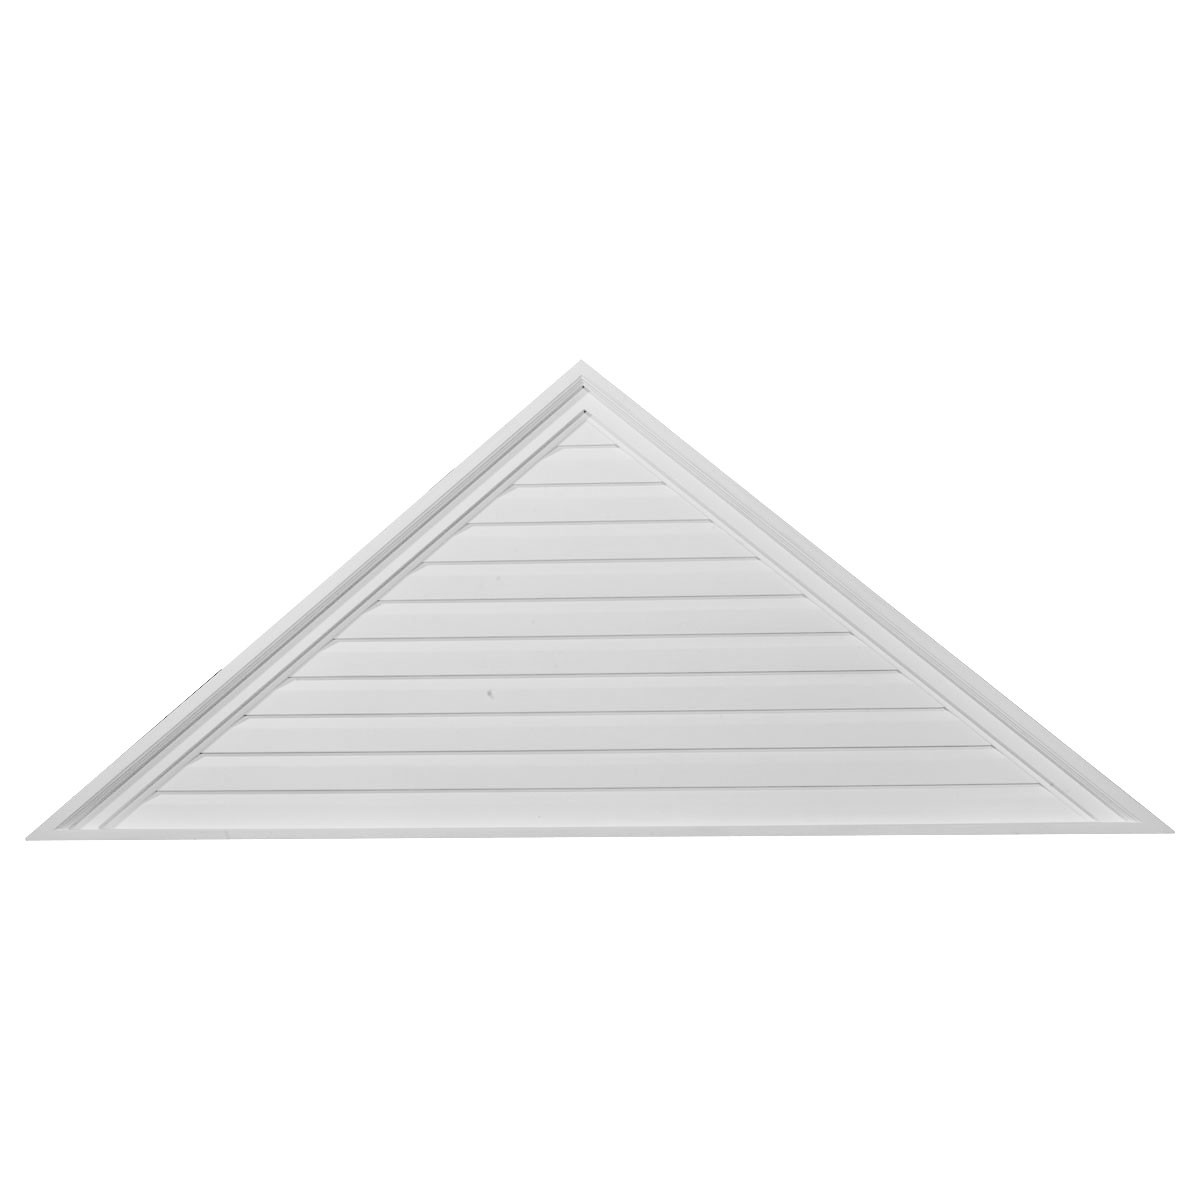 """EM-GVTR72X18F - 72""""W x 18""""H x 2 1/4""""P,  Pitch 6/12 Triangle Gable Vent, Functional"""